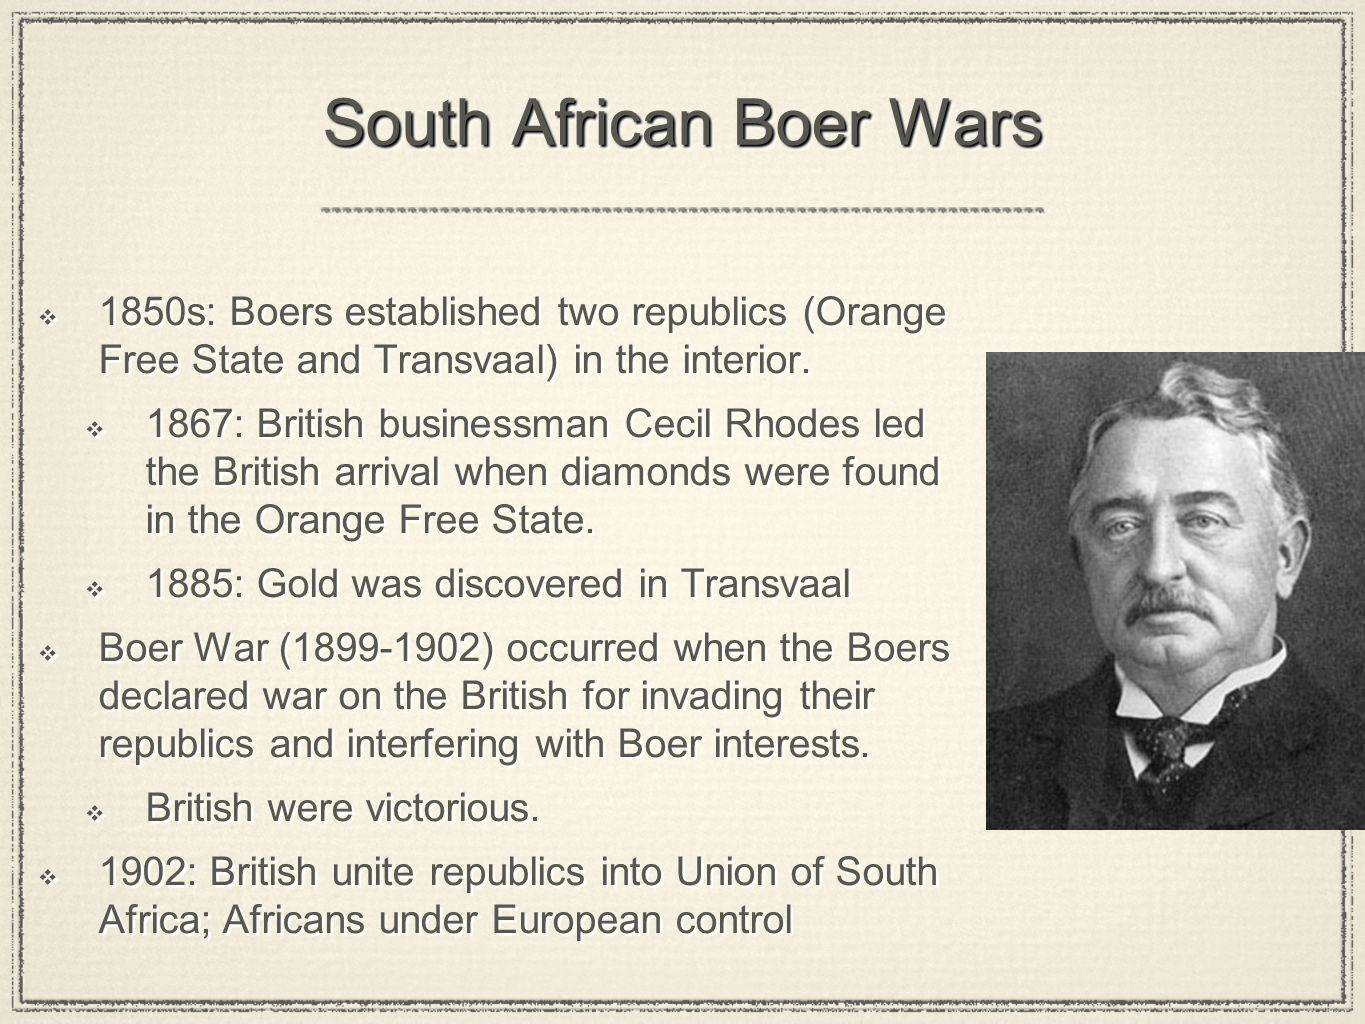 South African Boer Wars